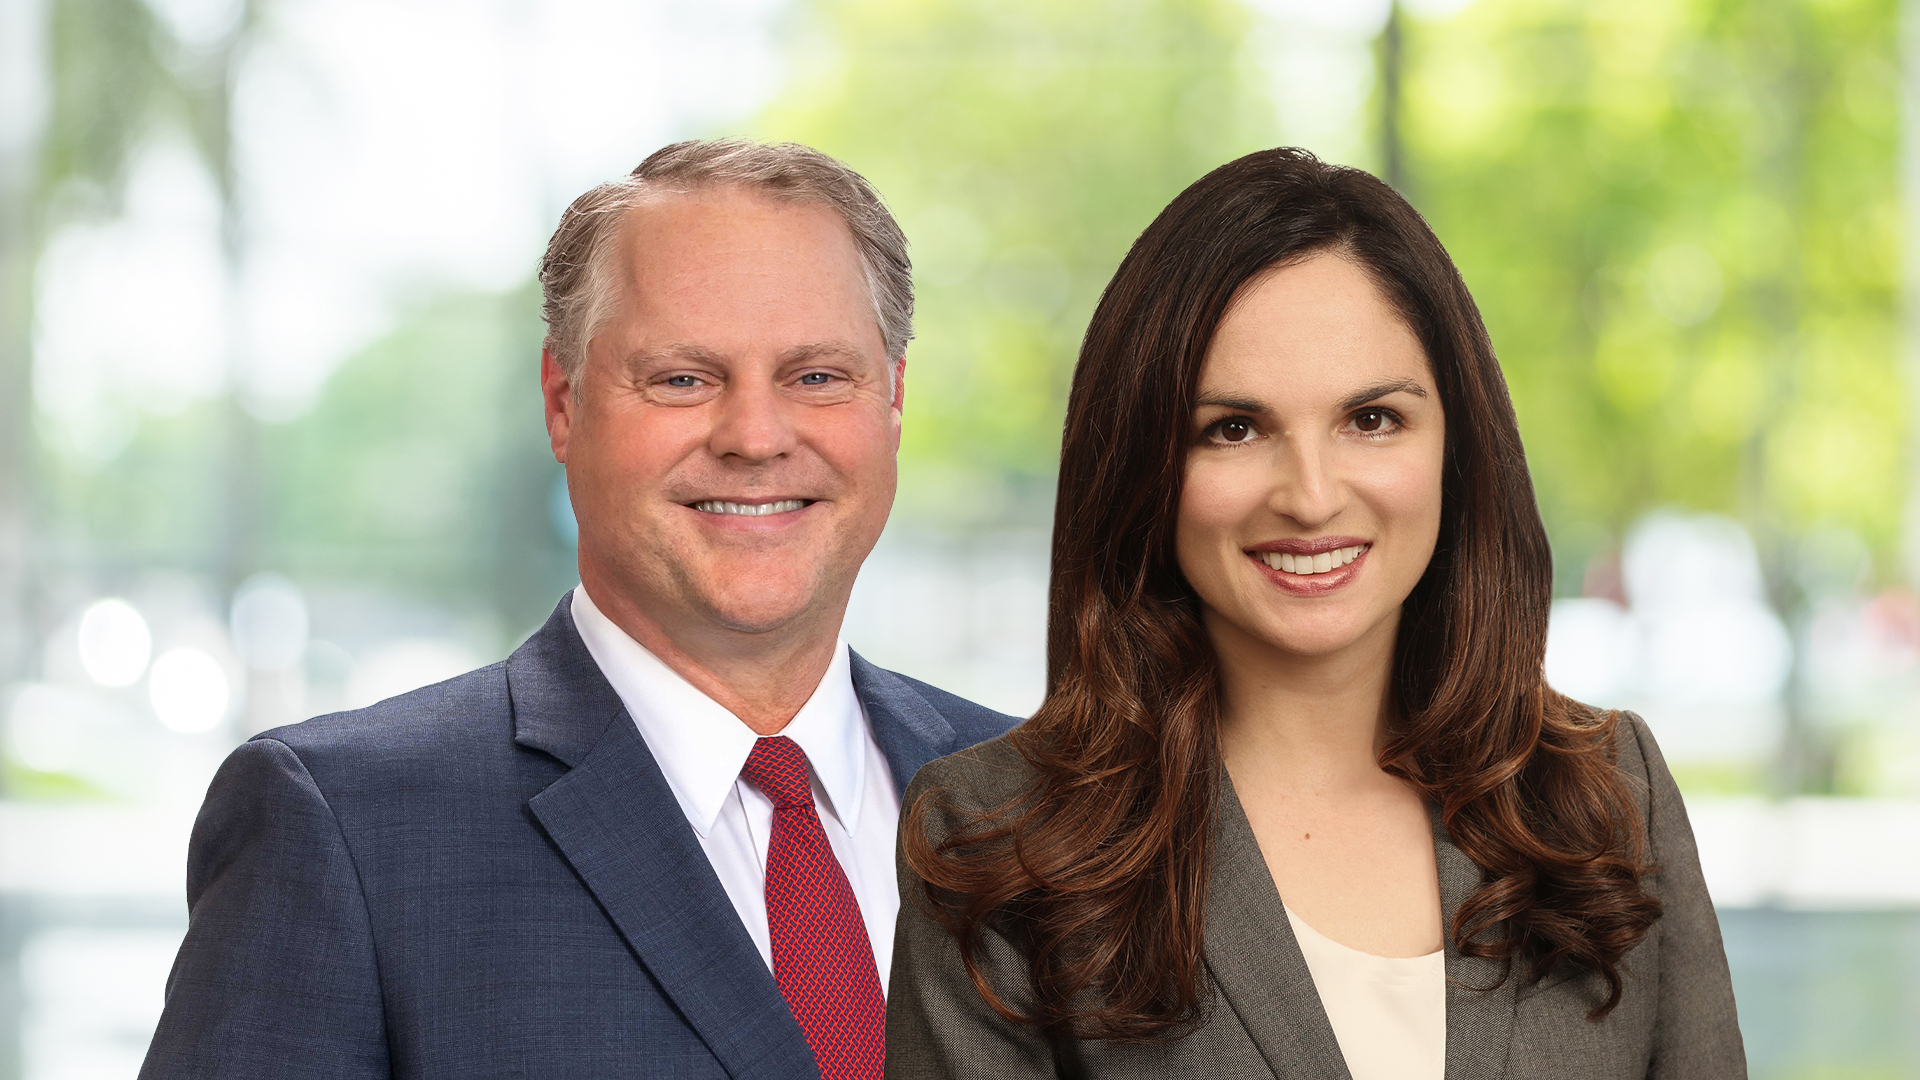 Jay Dewald and Julie Searle have joined NRF's Regulations, Investigations, Securities and Compliance practice as partners.